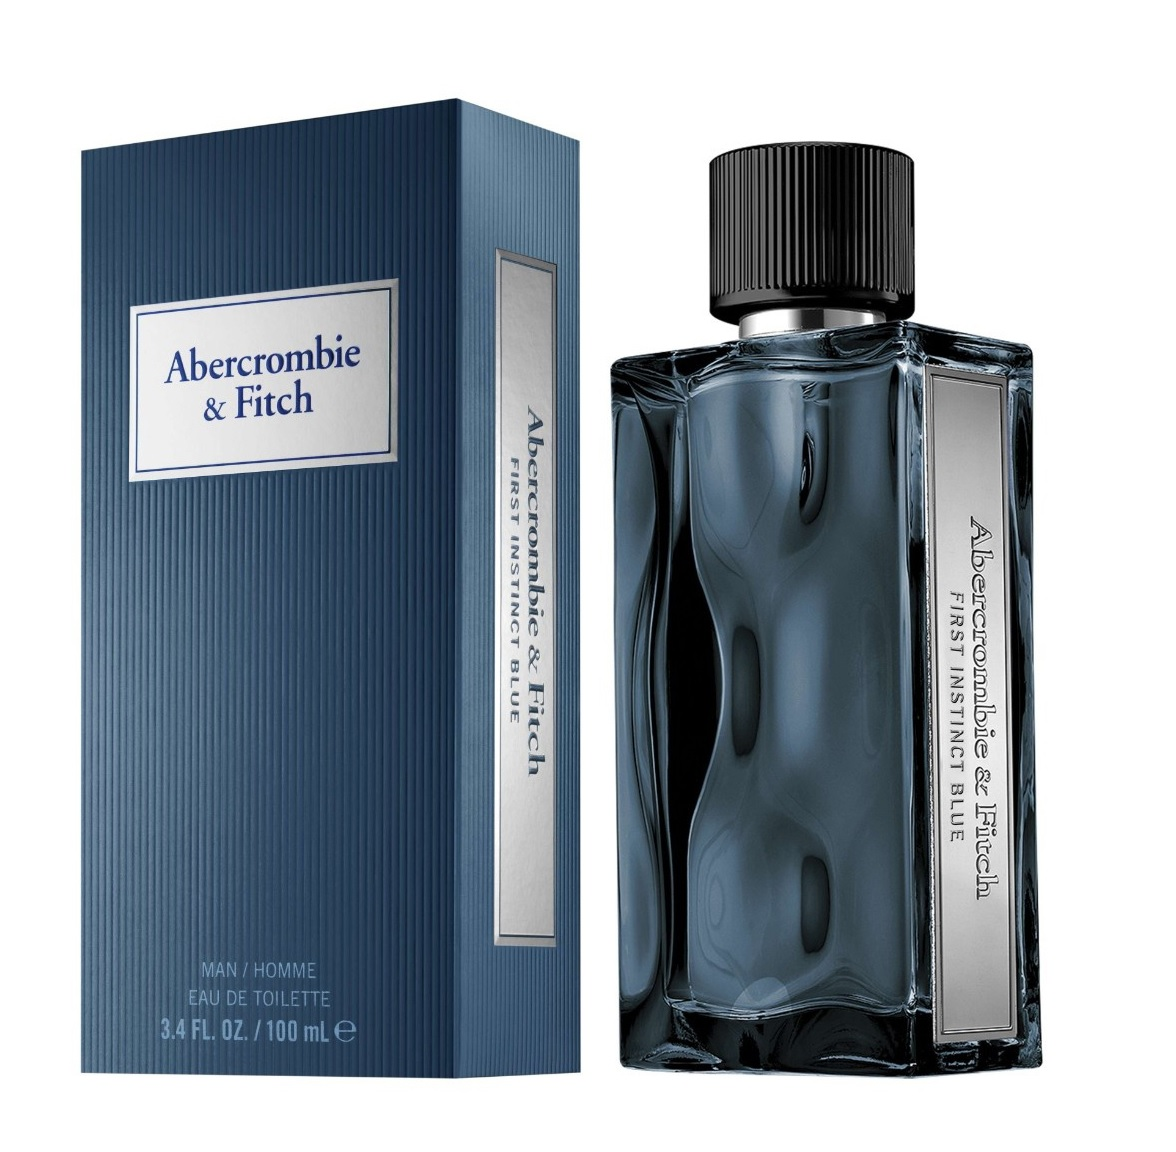 Купить Туалетная вода Abercrombie & Fitch, Abercrombie & Fitch First Instinct Blue Man 100ml тестер, США